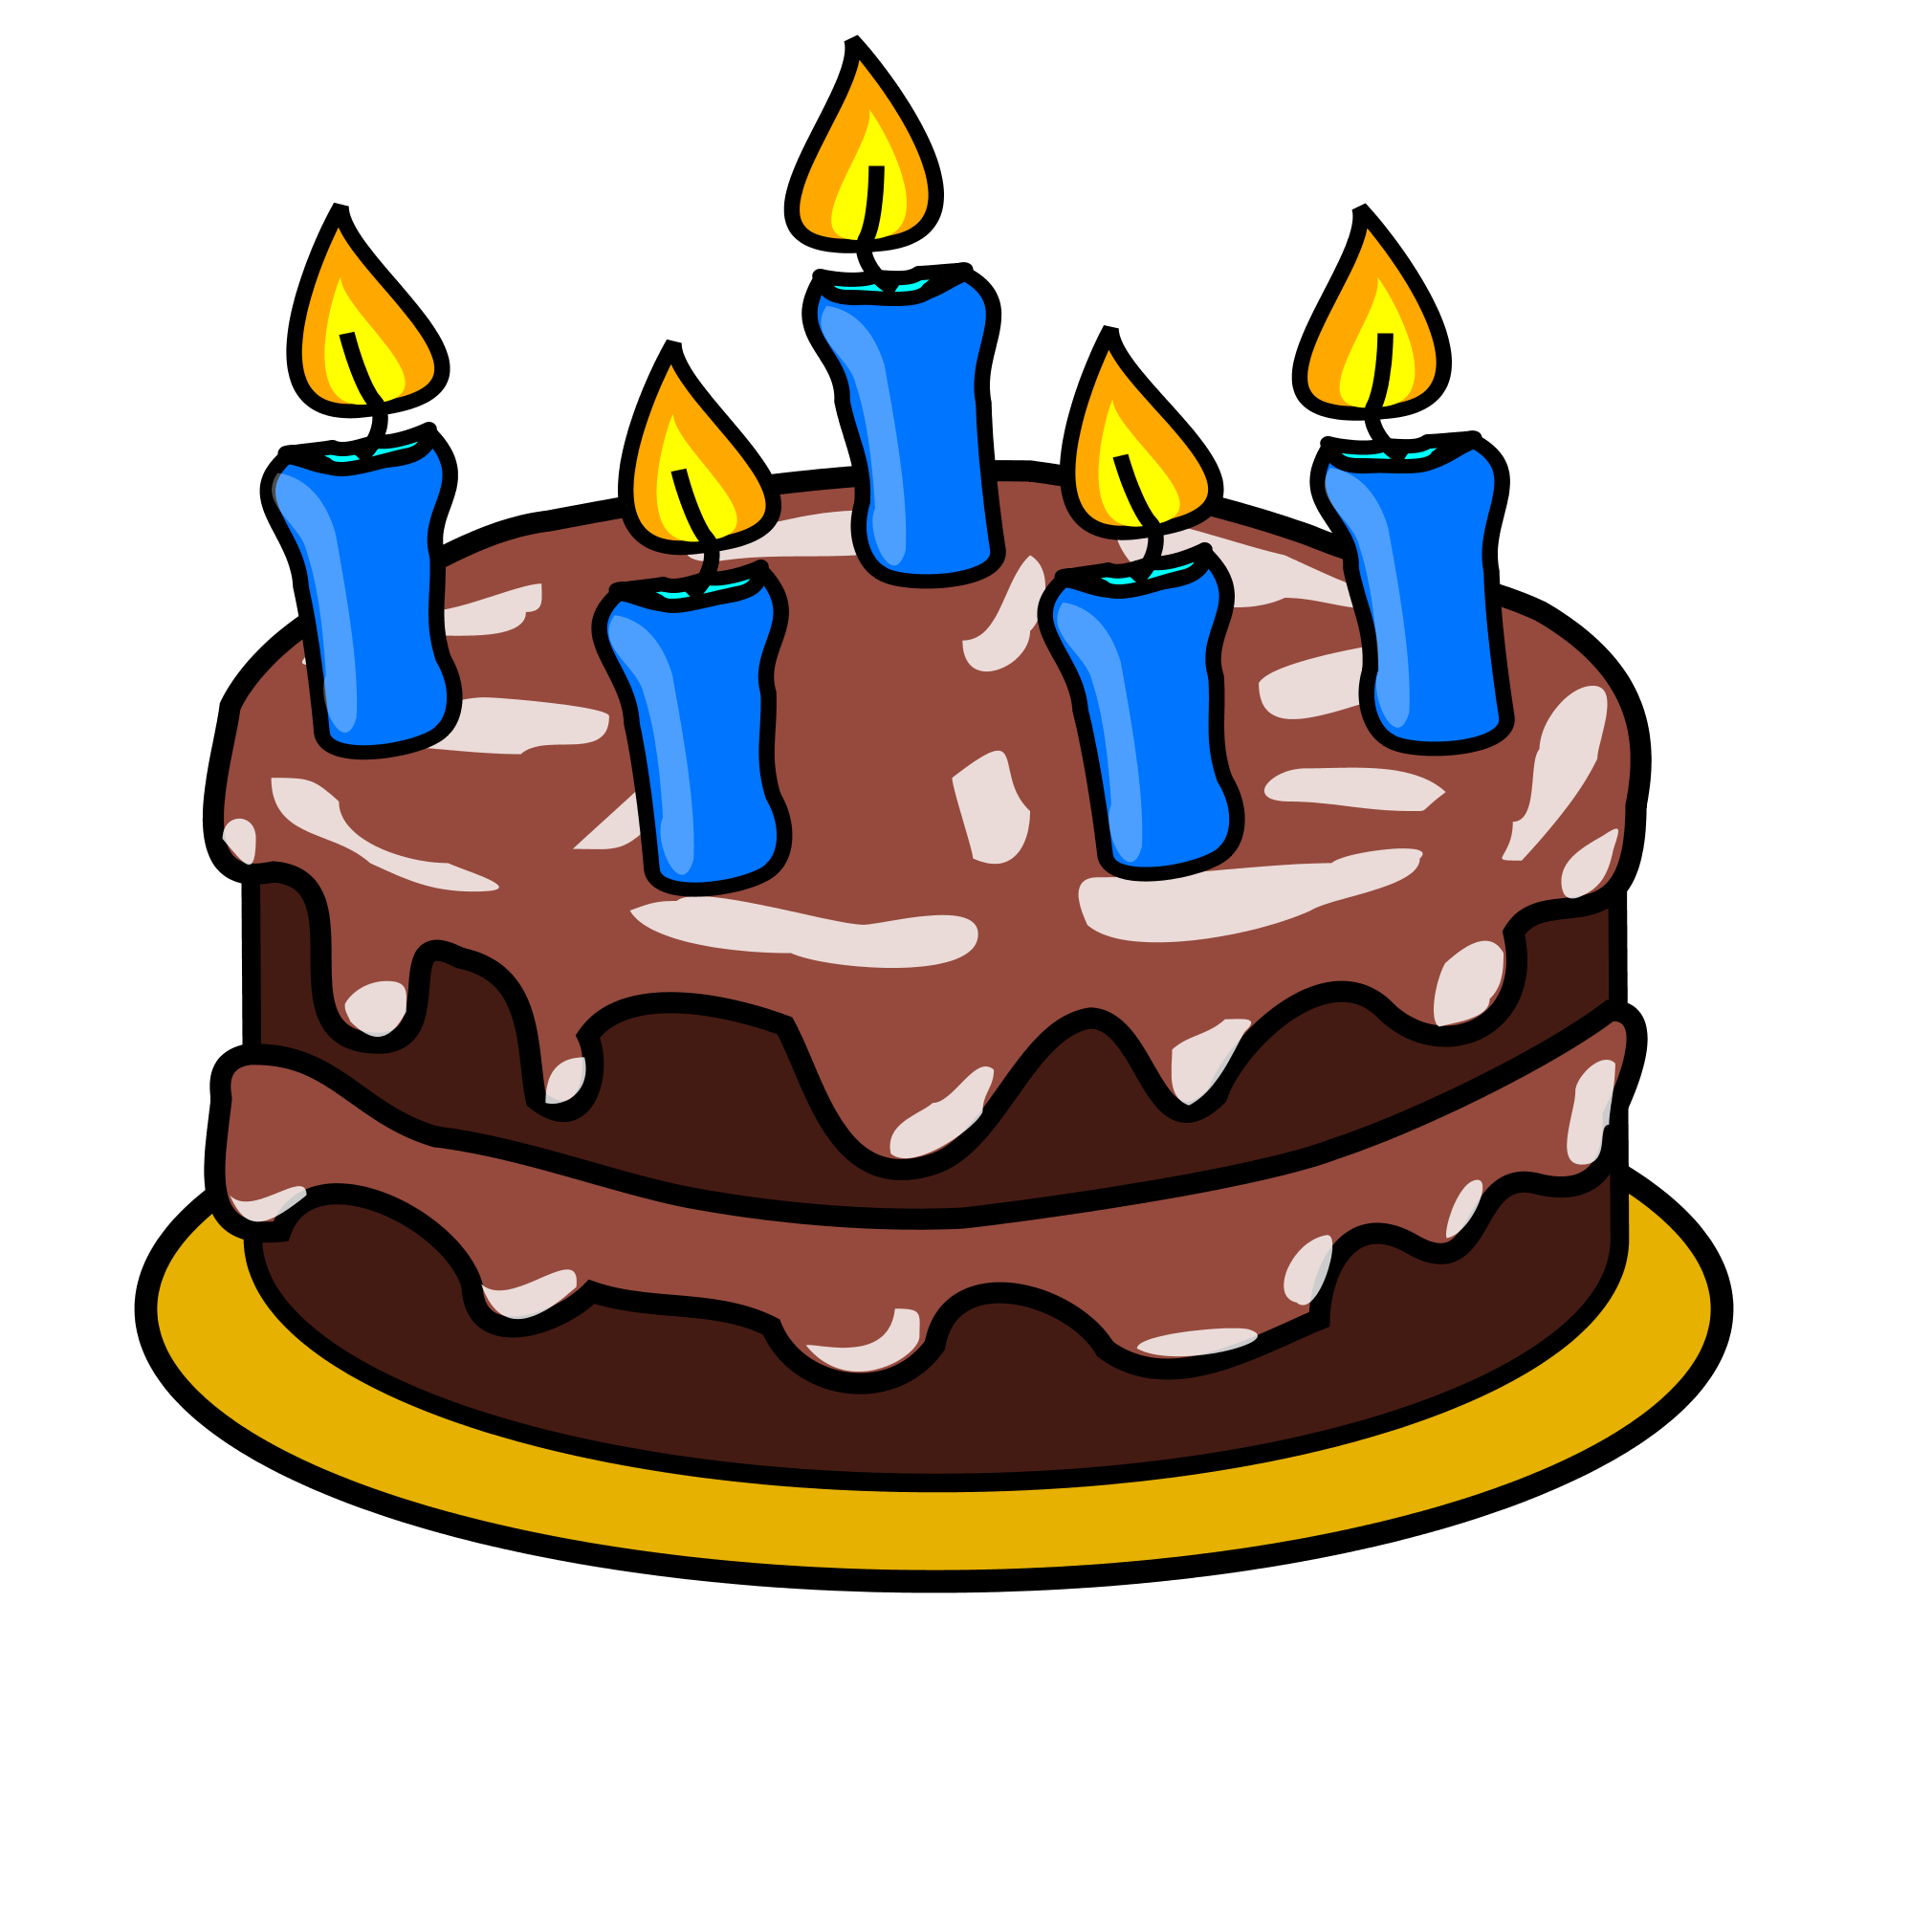 1st Birthday Cake Clip Art - ClipArt Best - Cliparts.co